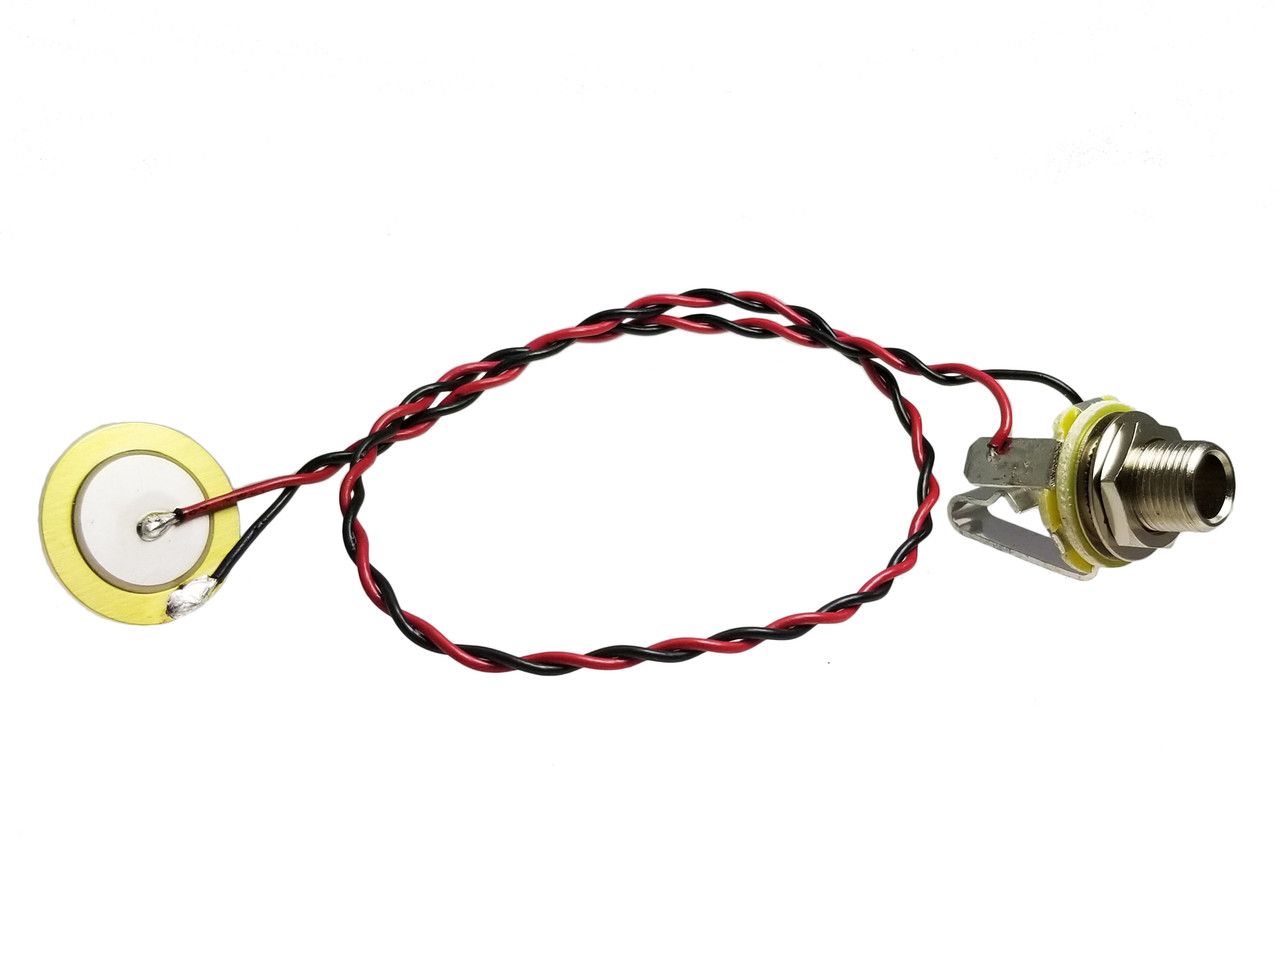 basic pre wired piezo jack harness with shielded cable c b gitty crafter supply [ 1280 x 960 Pixel ]